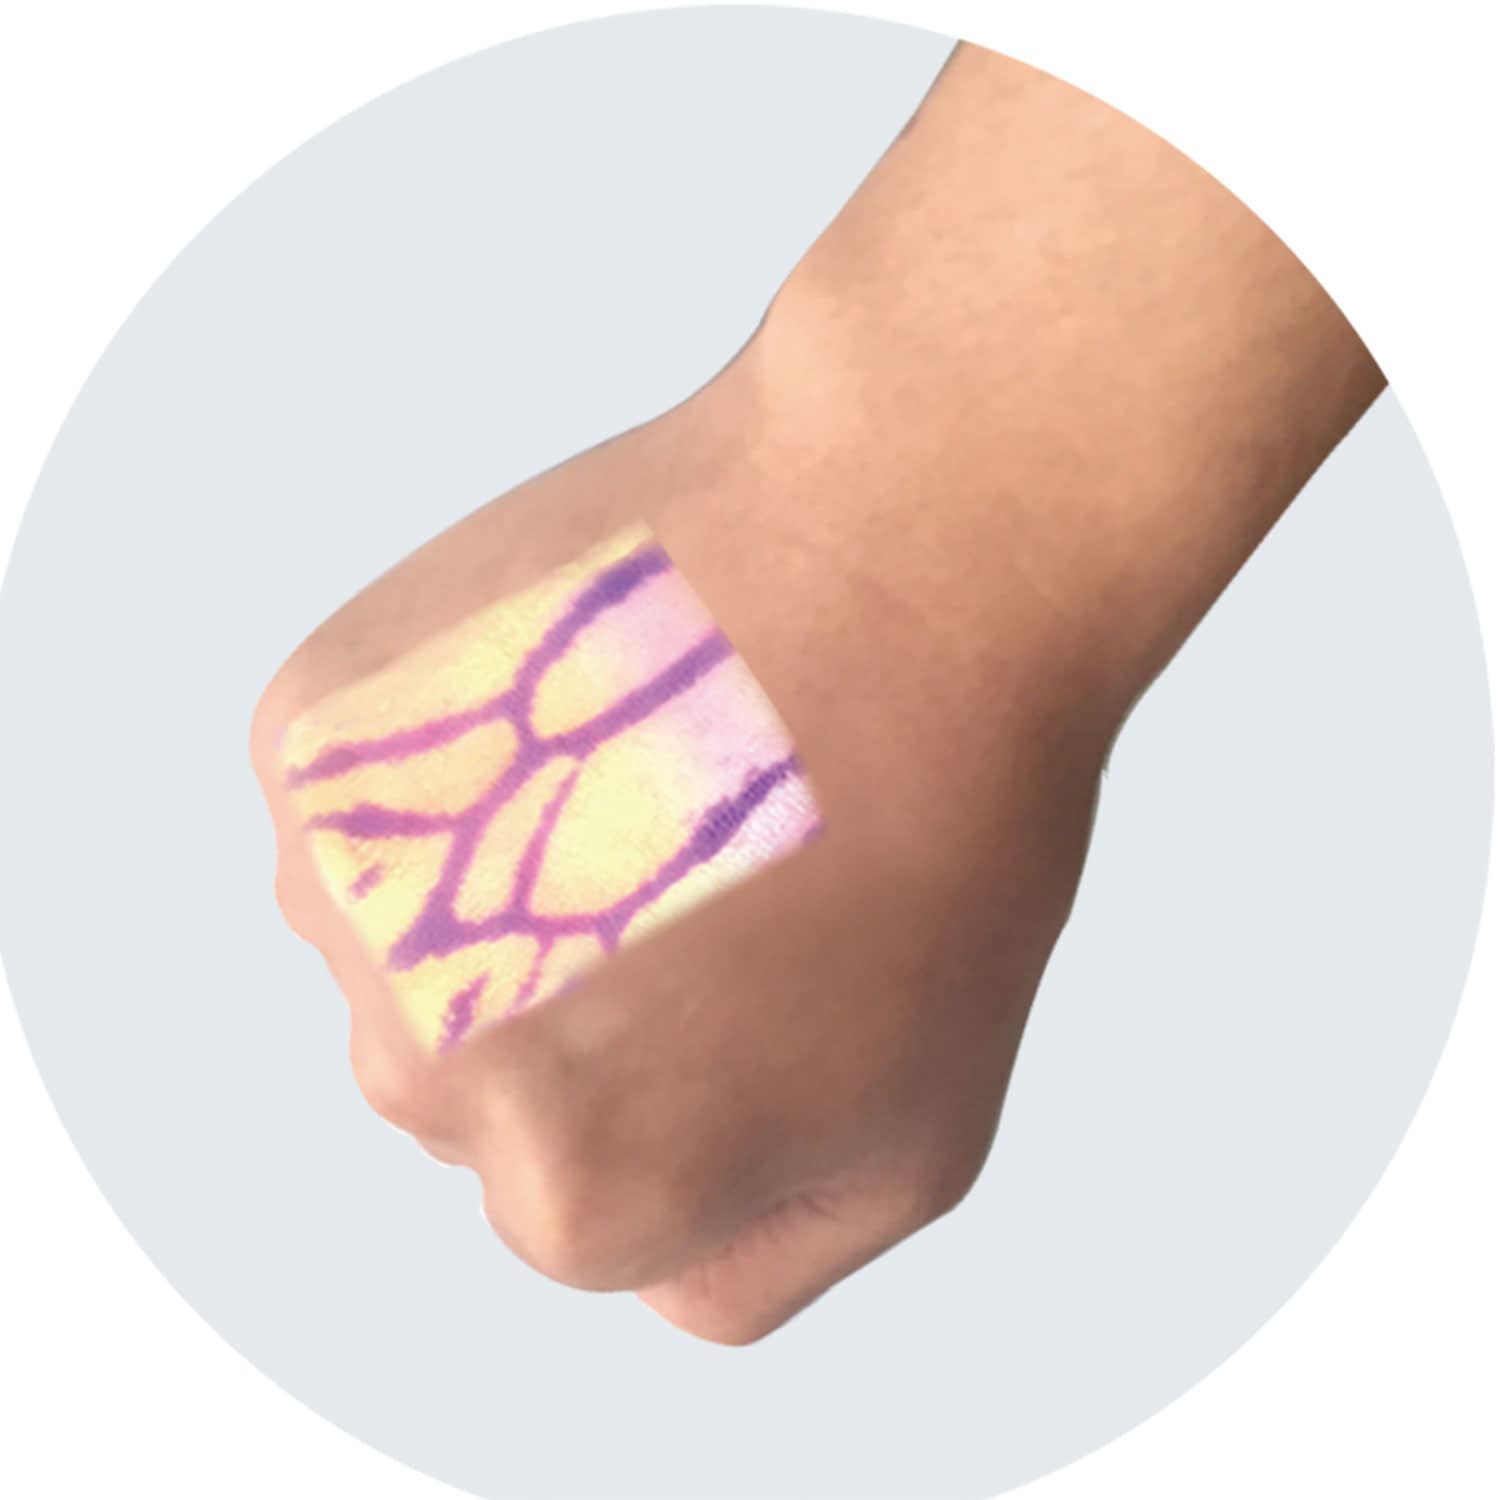 Vein Viewer